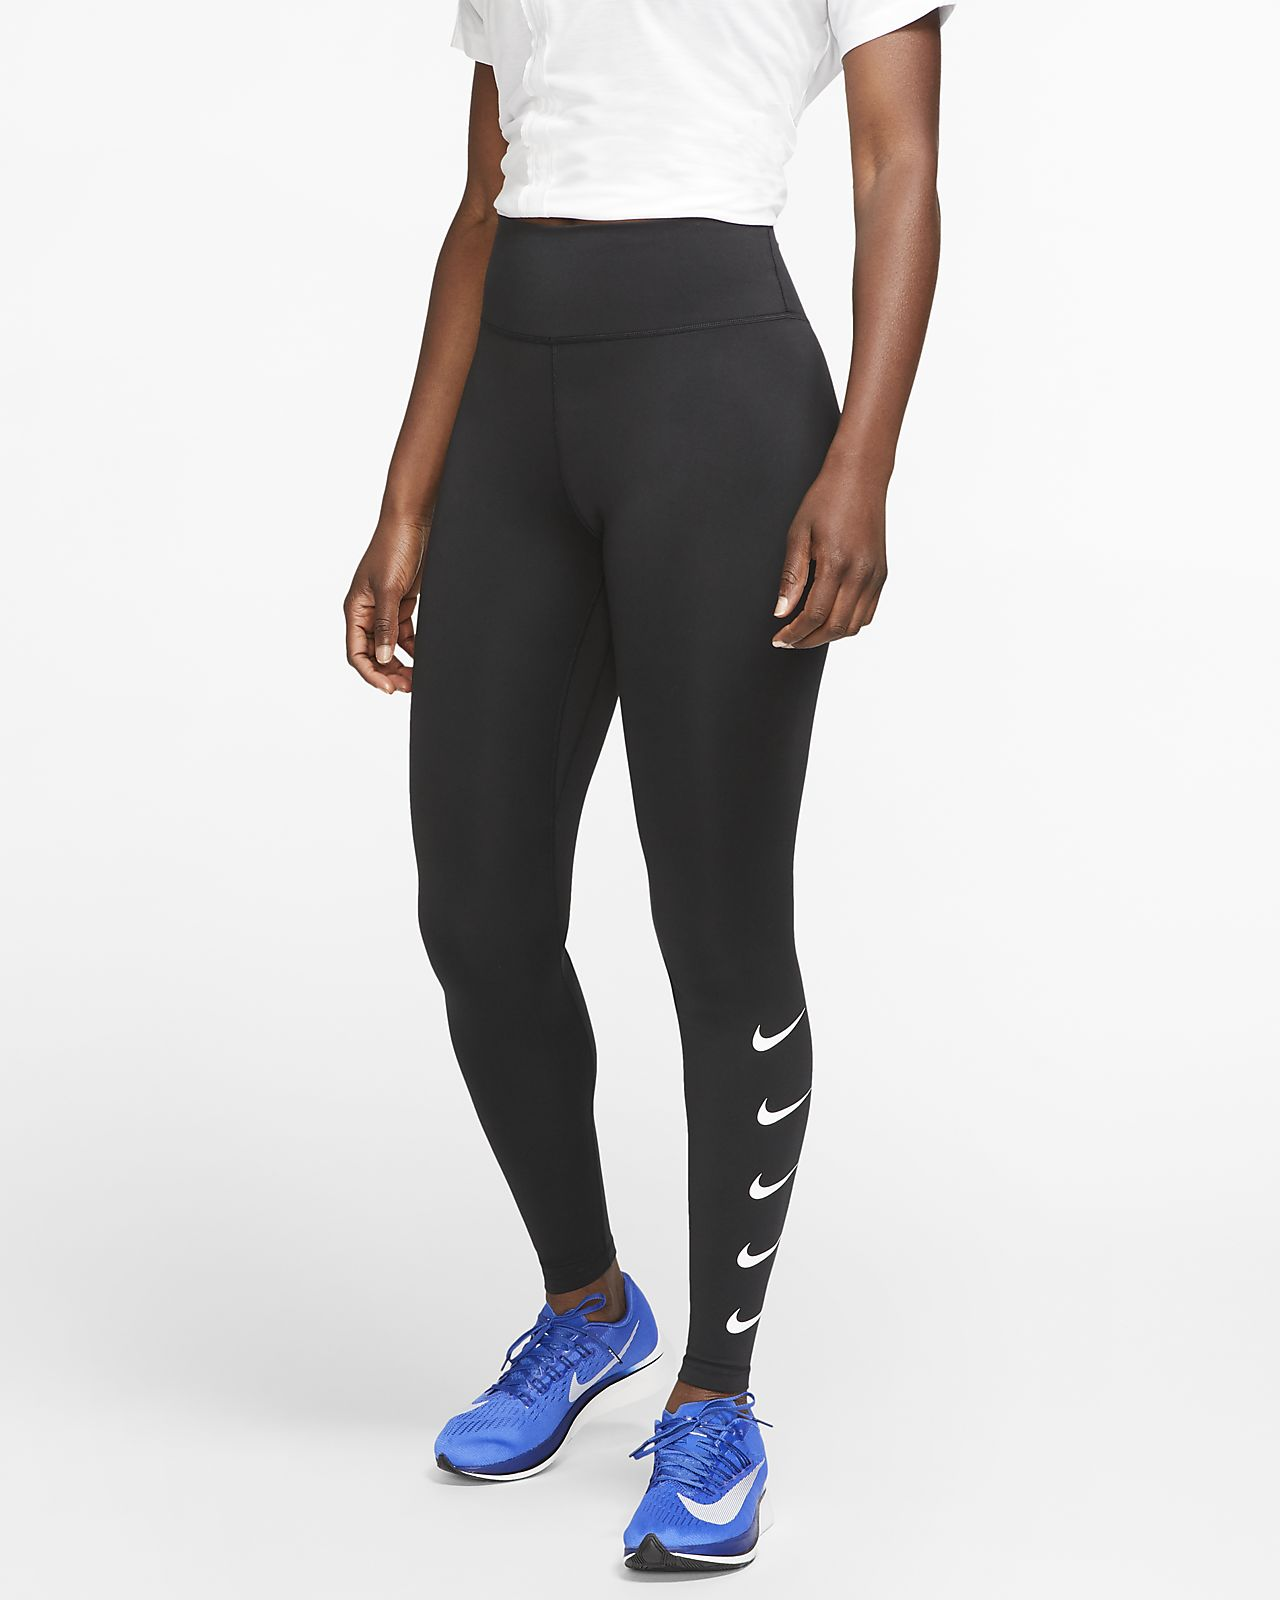 new appearance coupon codes free shipping Nike Swoosh Lauf-Tights für Damen